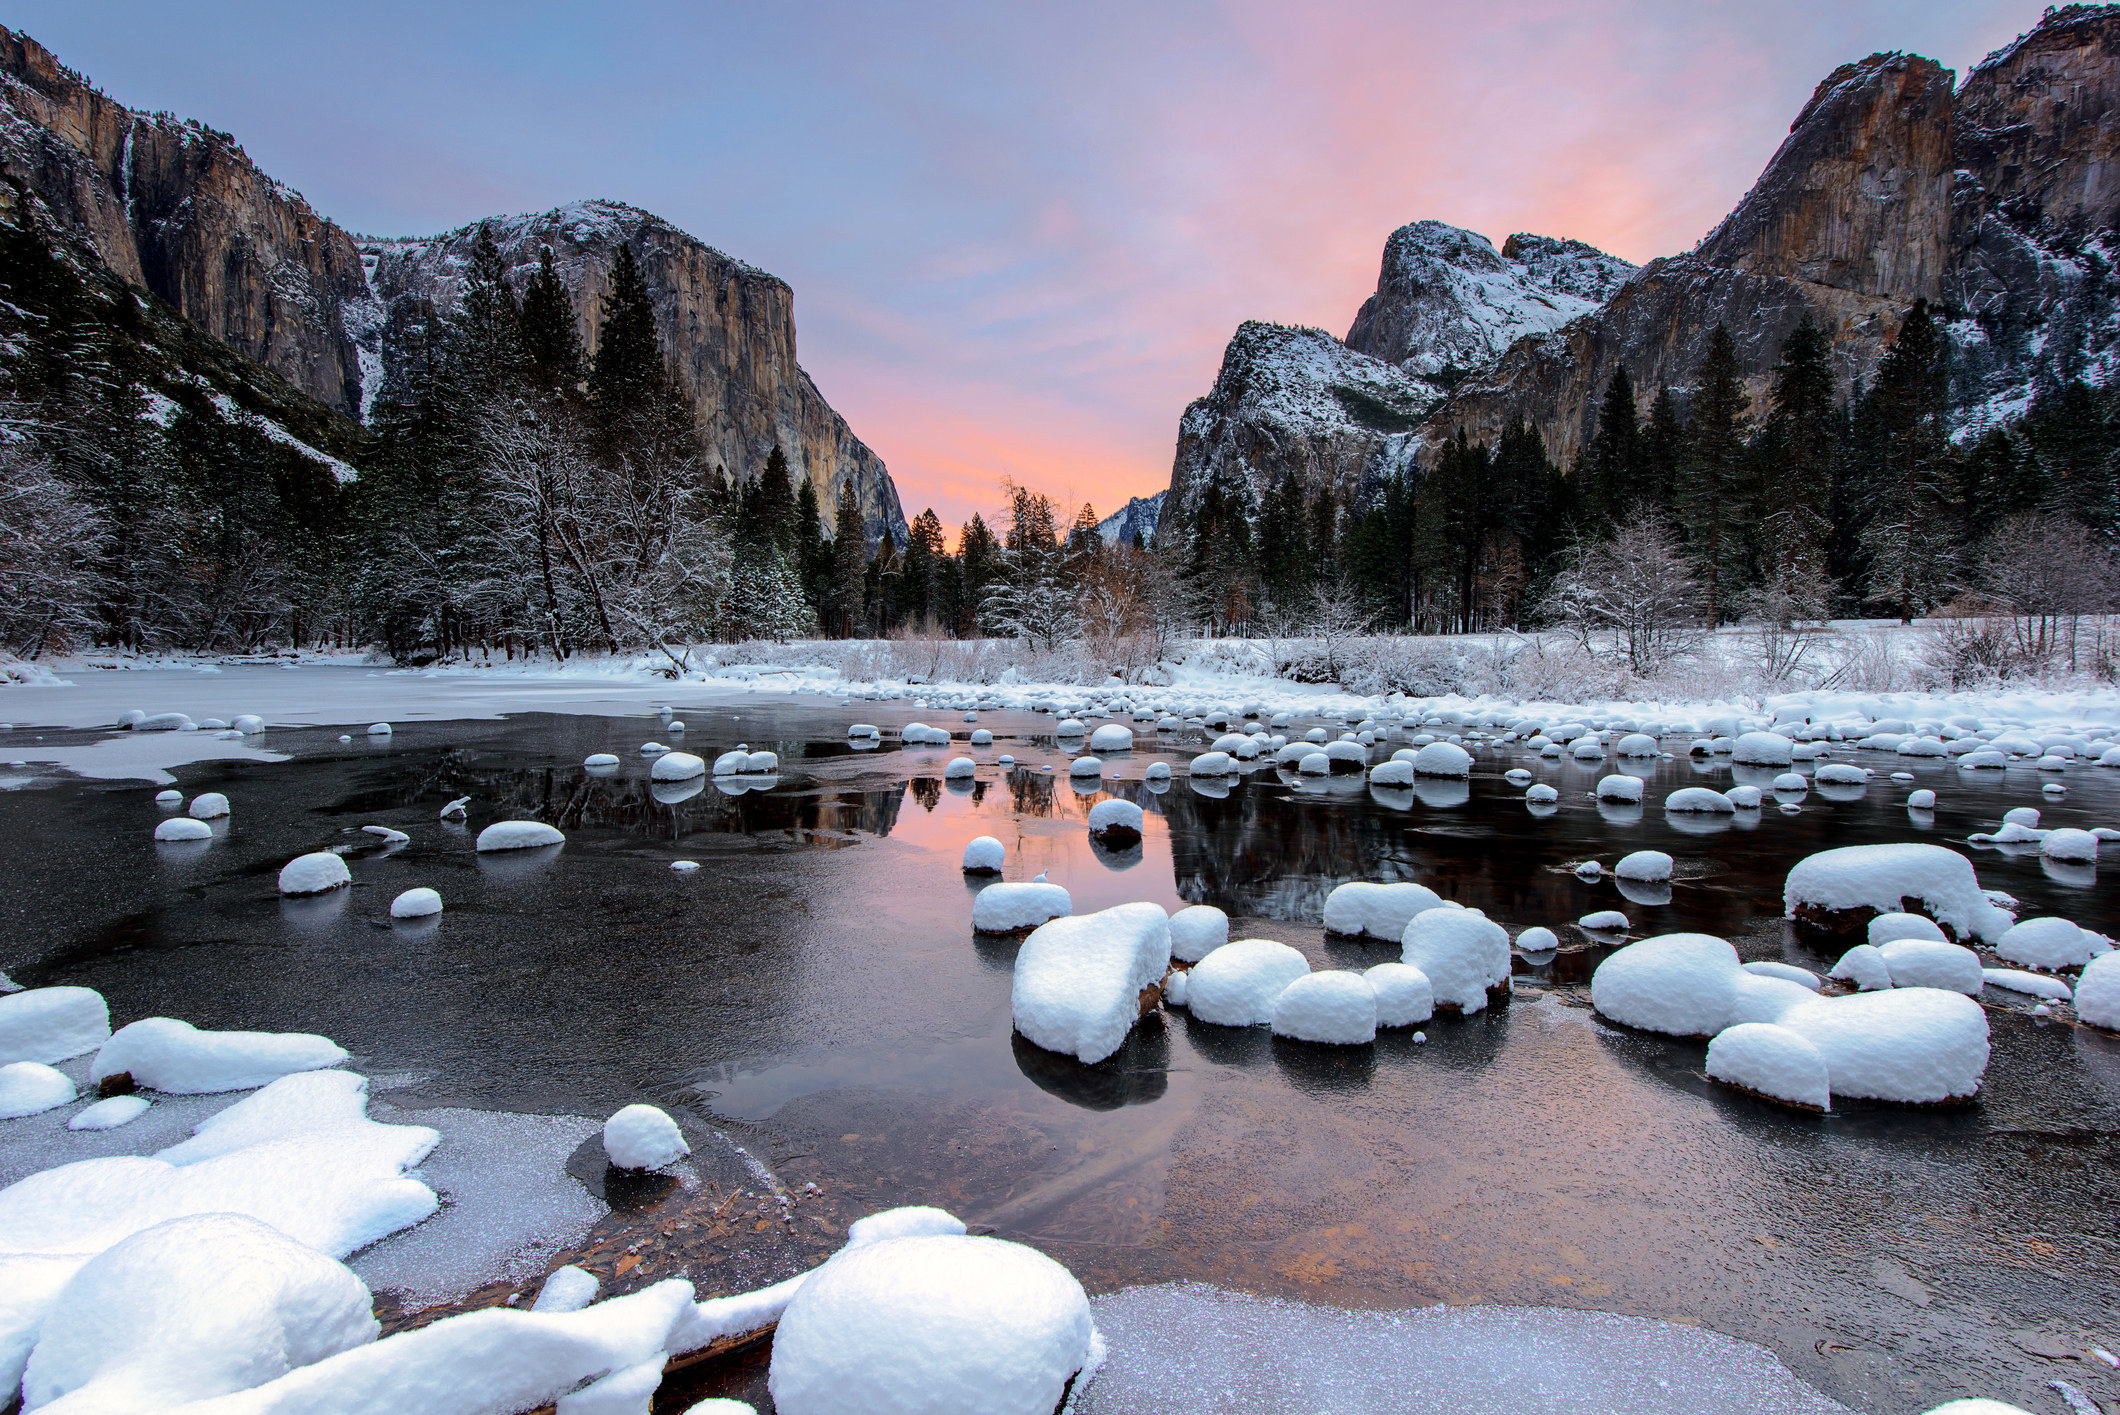 Snow covered rocks in a river with mountains in the background